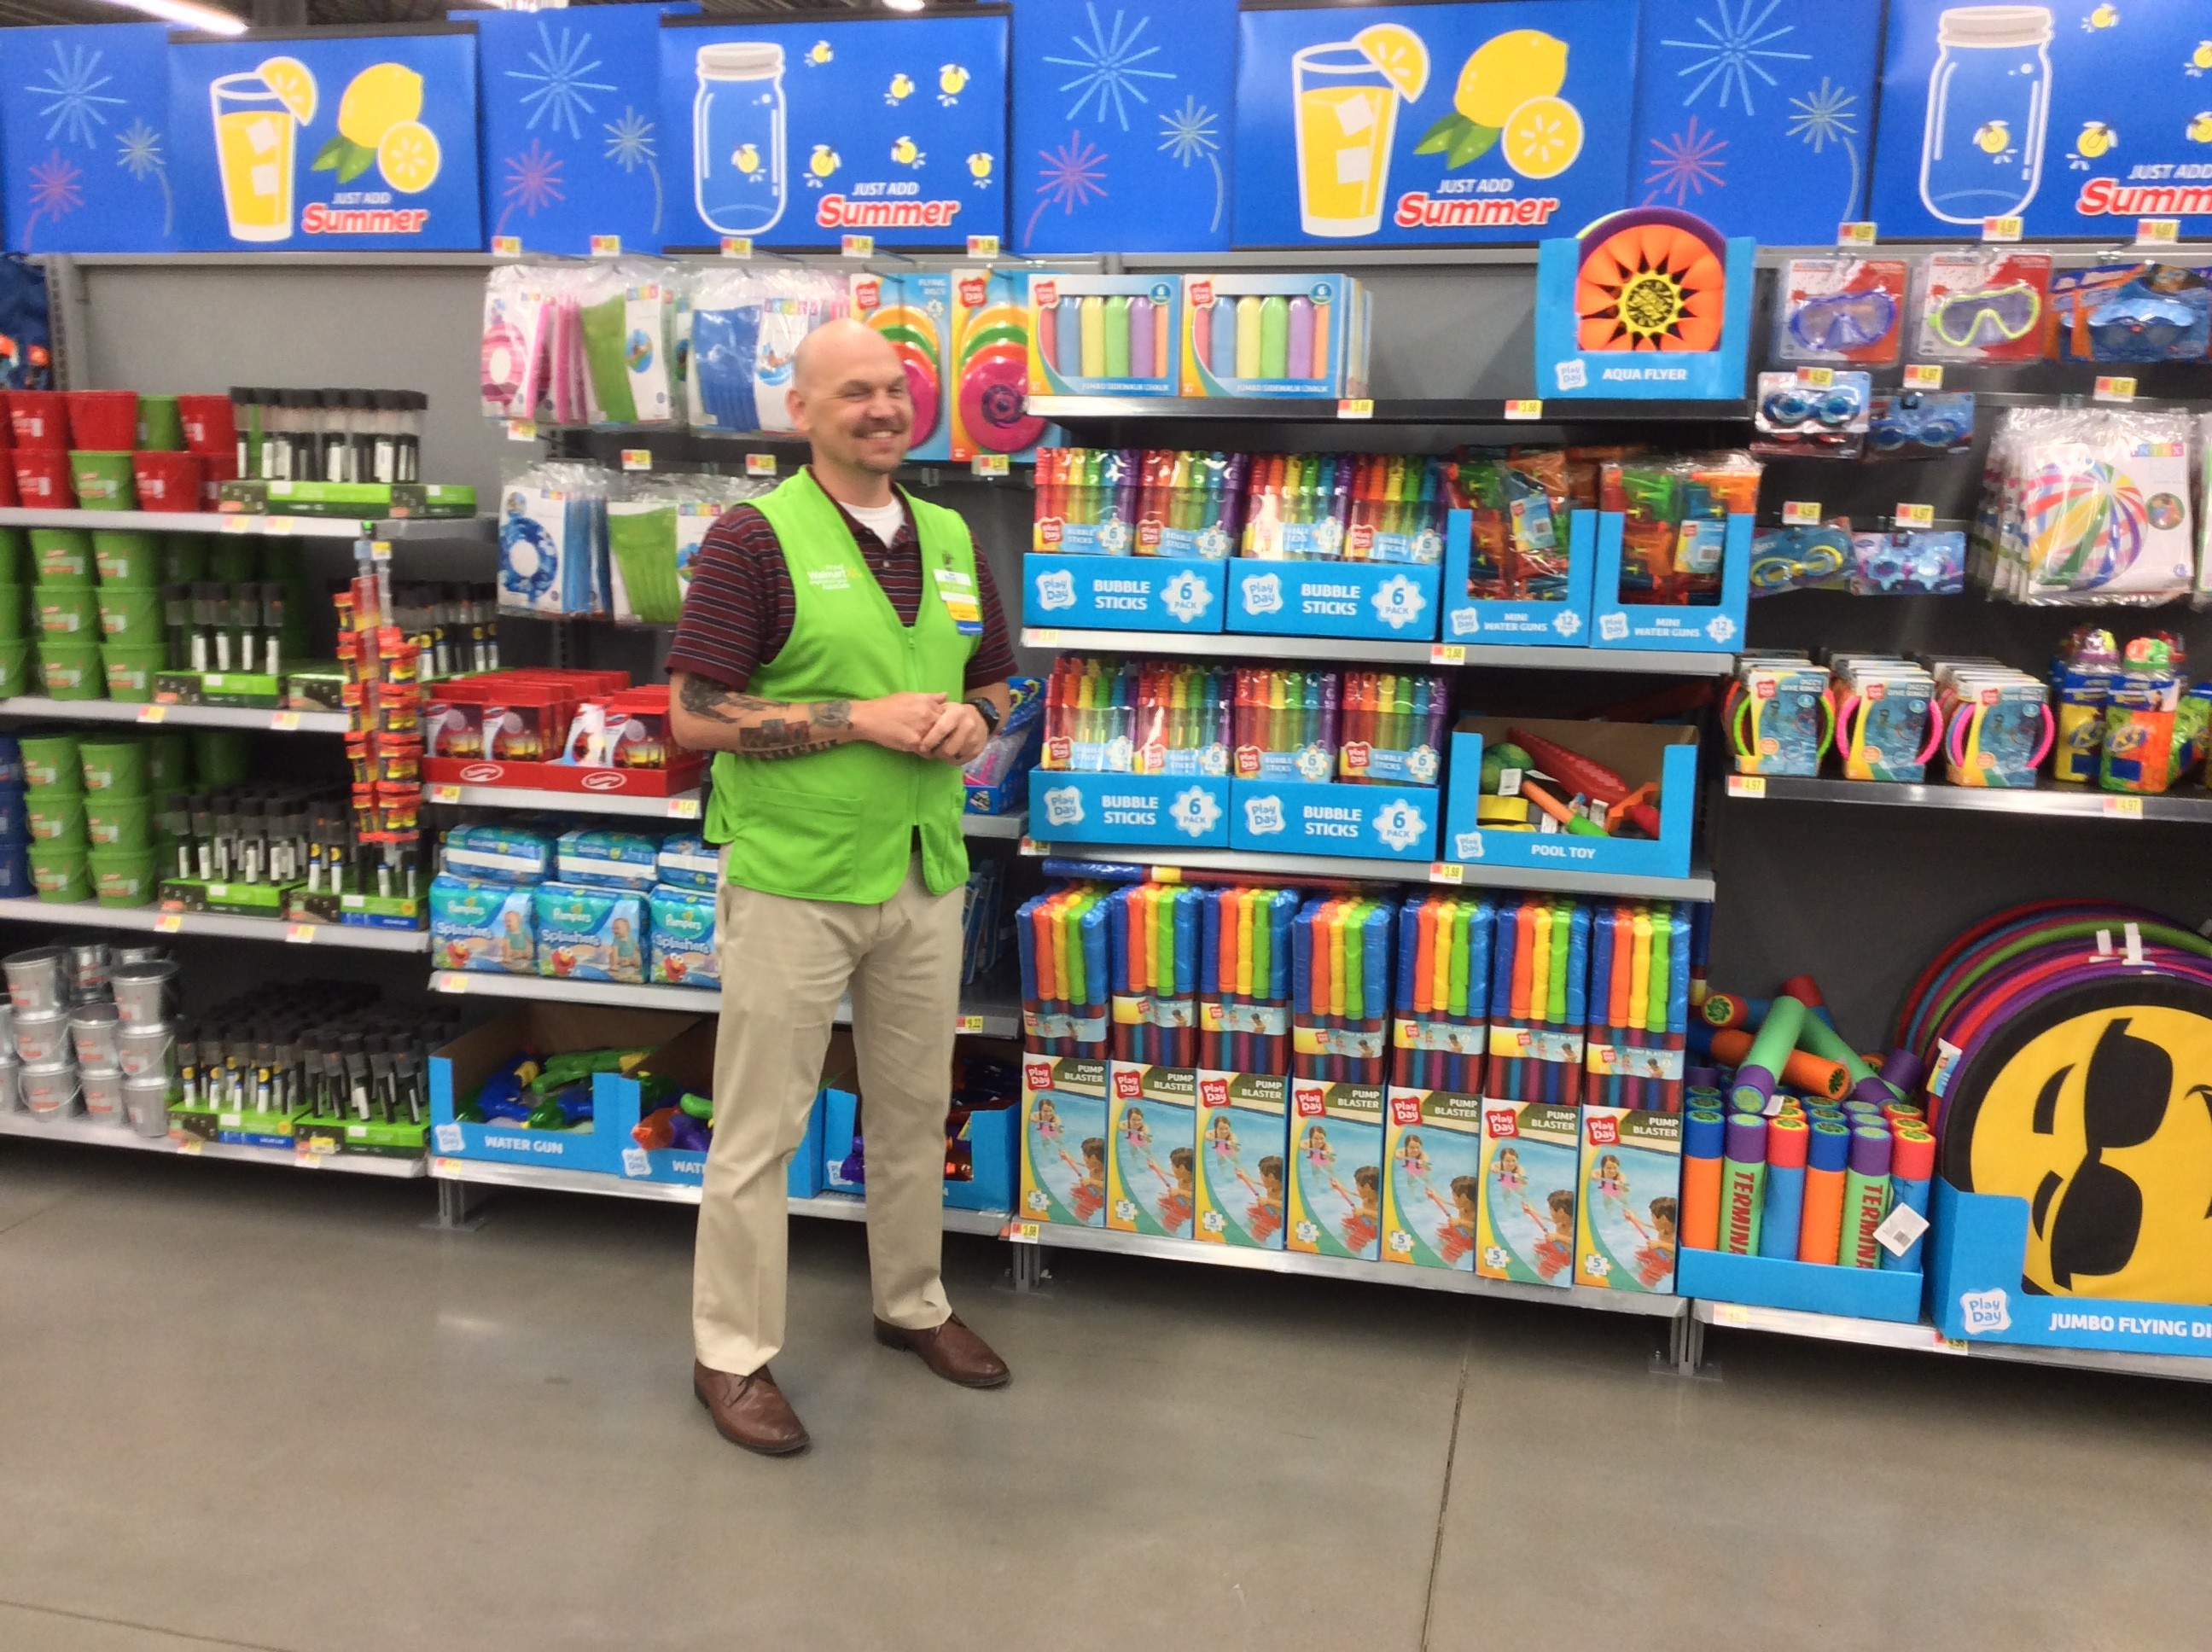 A male associate stands in front of shelves with outdoor toys